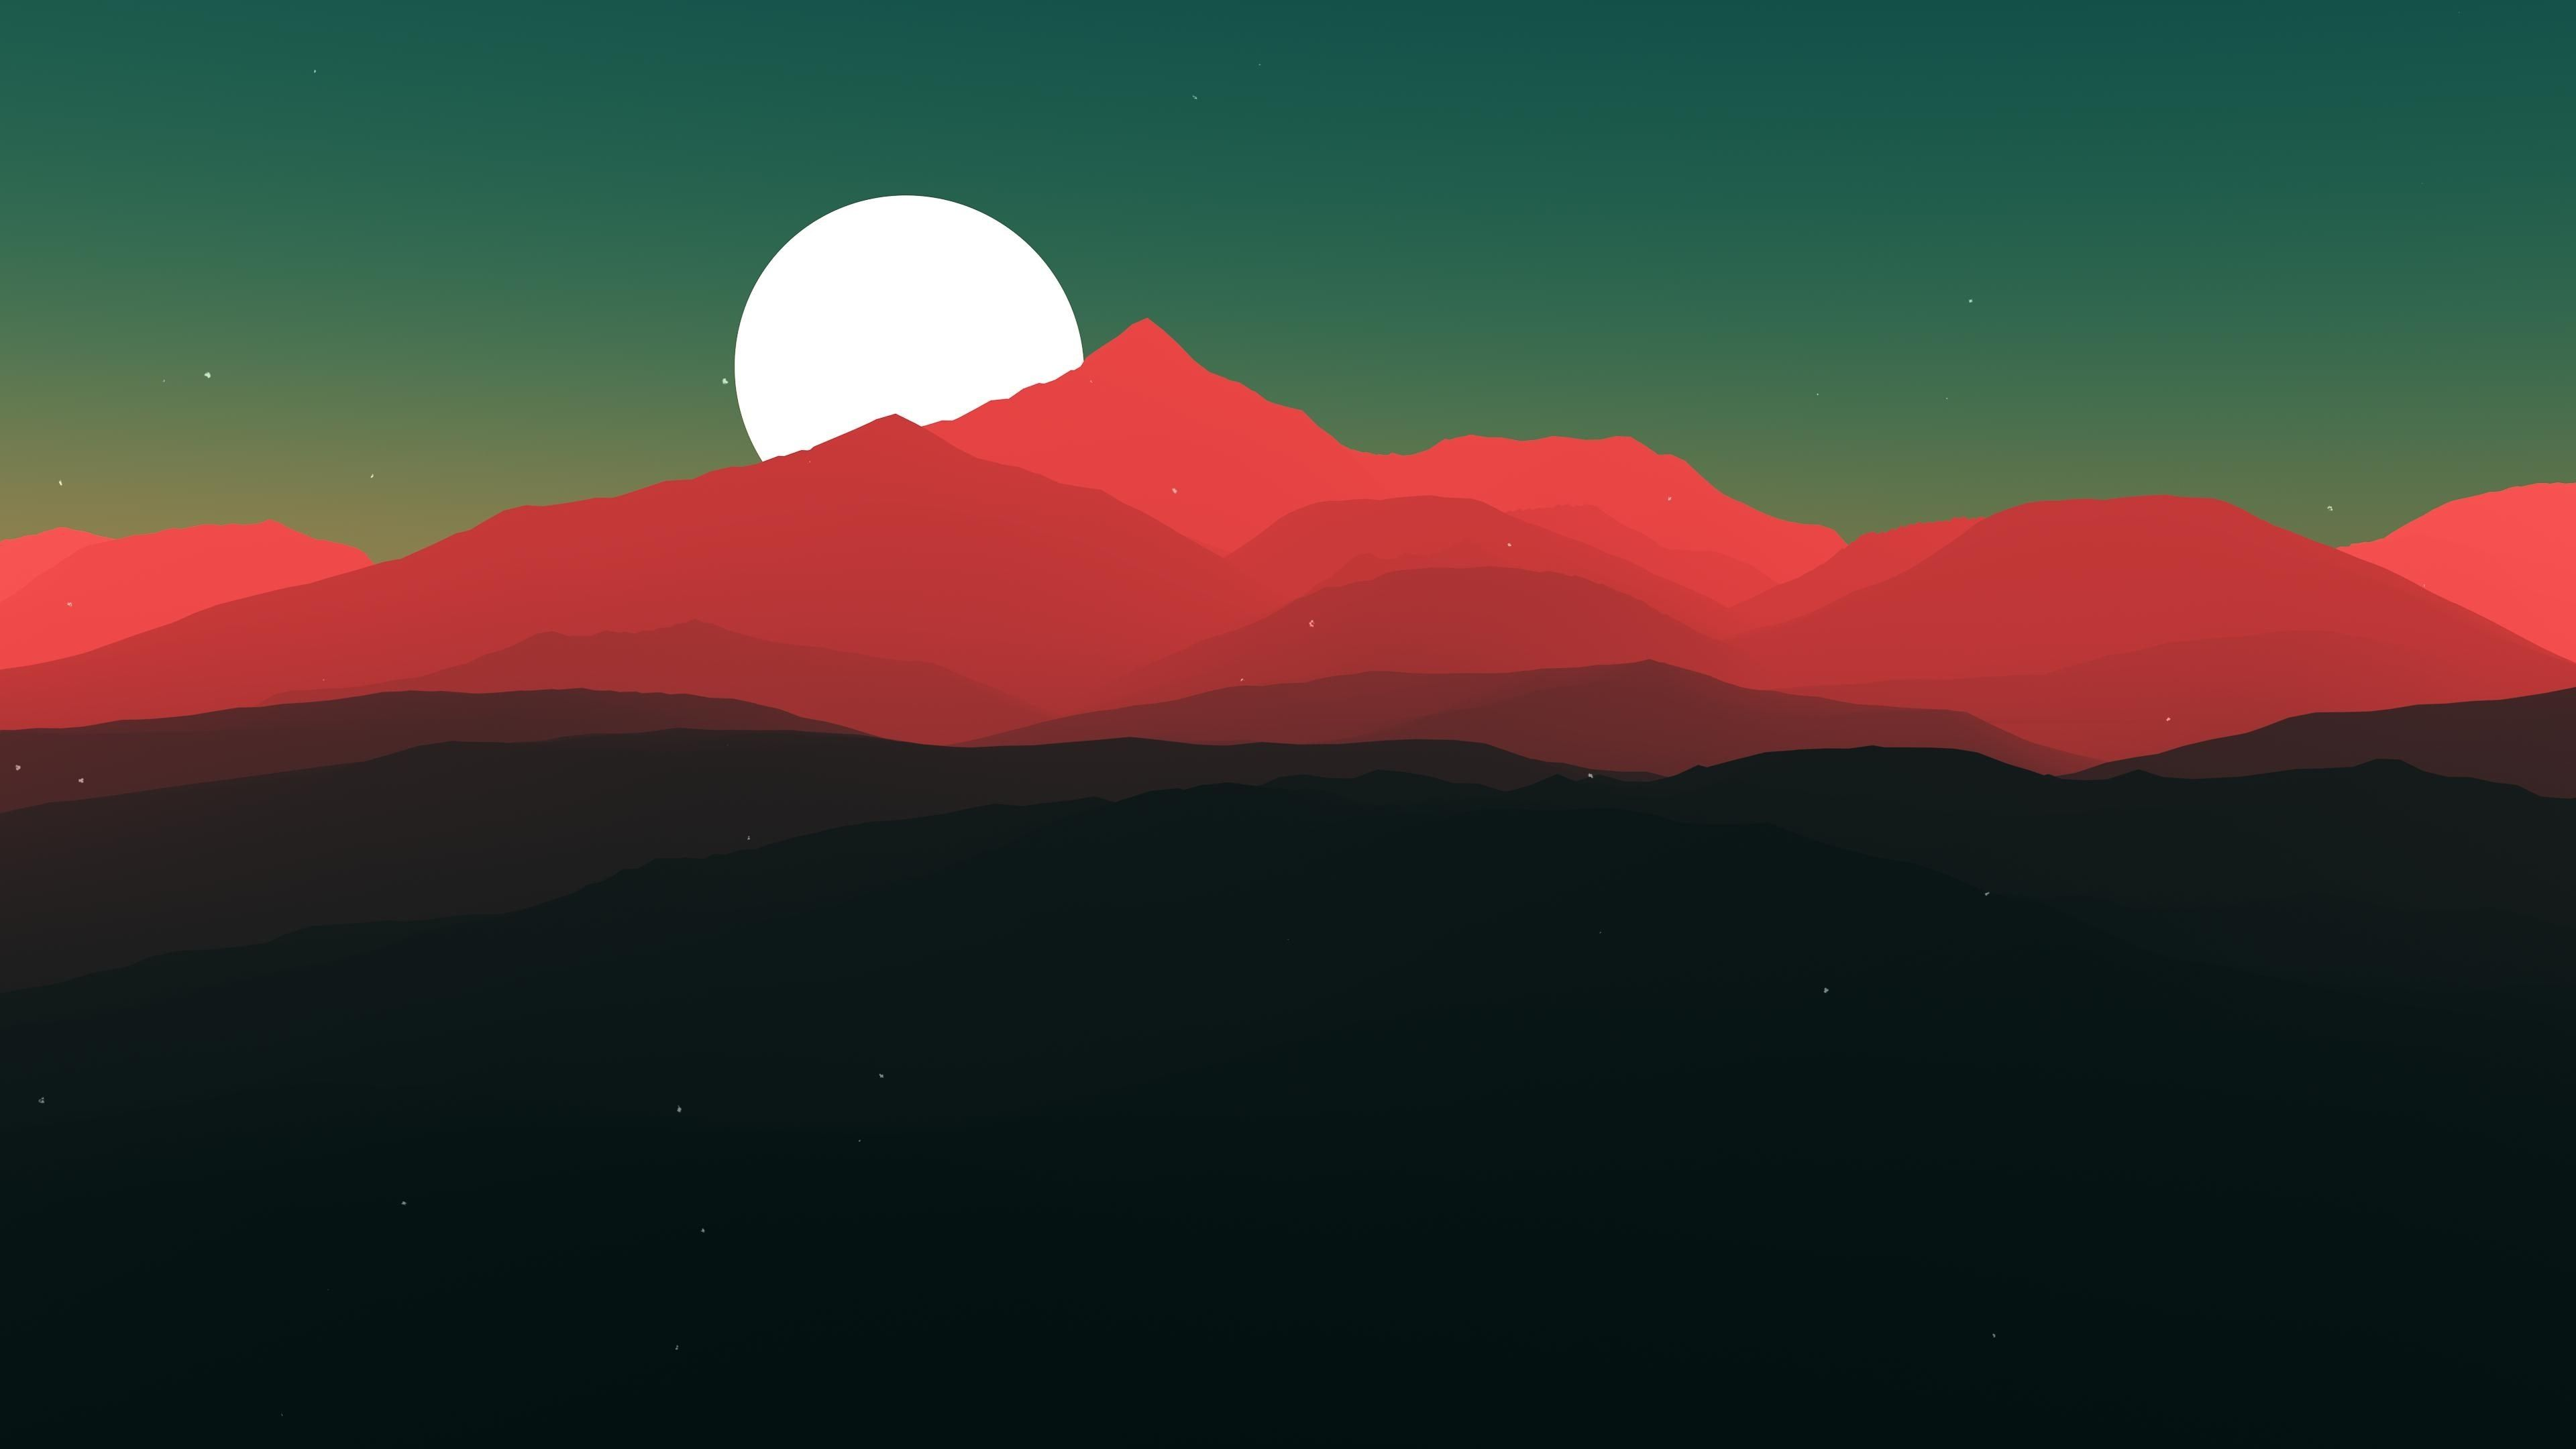 3840x2160 Minimalism 4k Wallpaper High Resolution Minimalist Landscape Landscape Wallpaper Digital Wallpaper